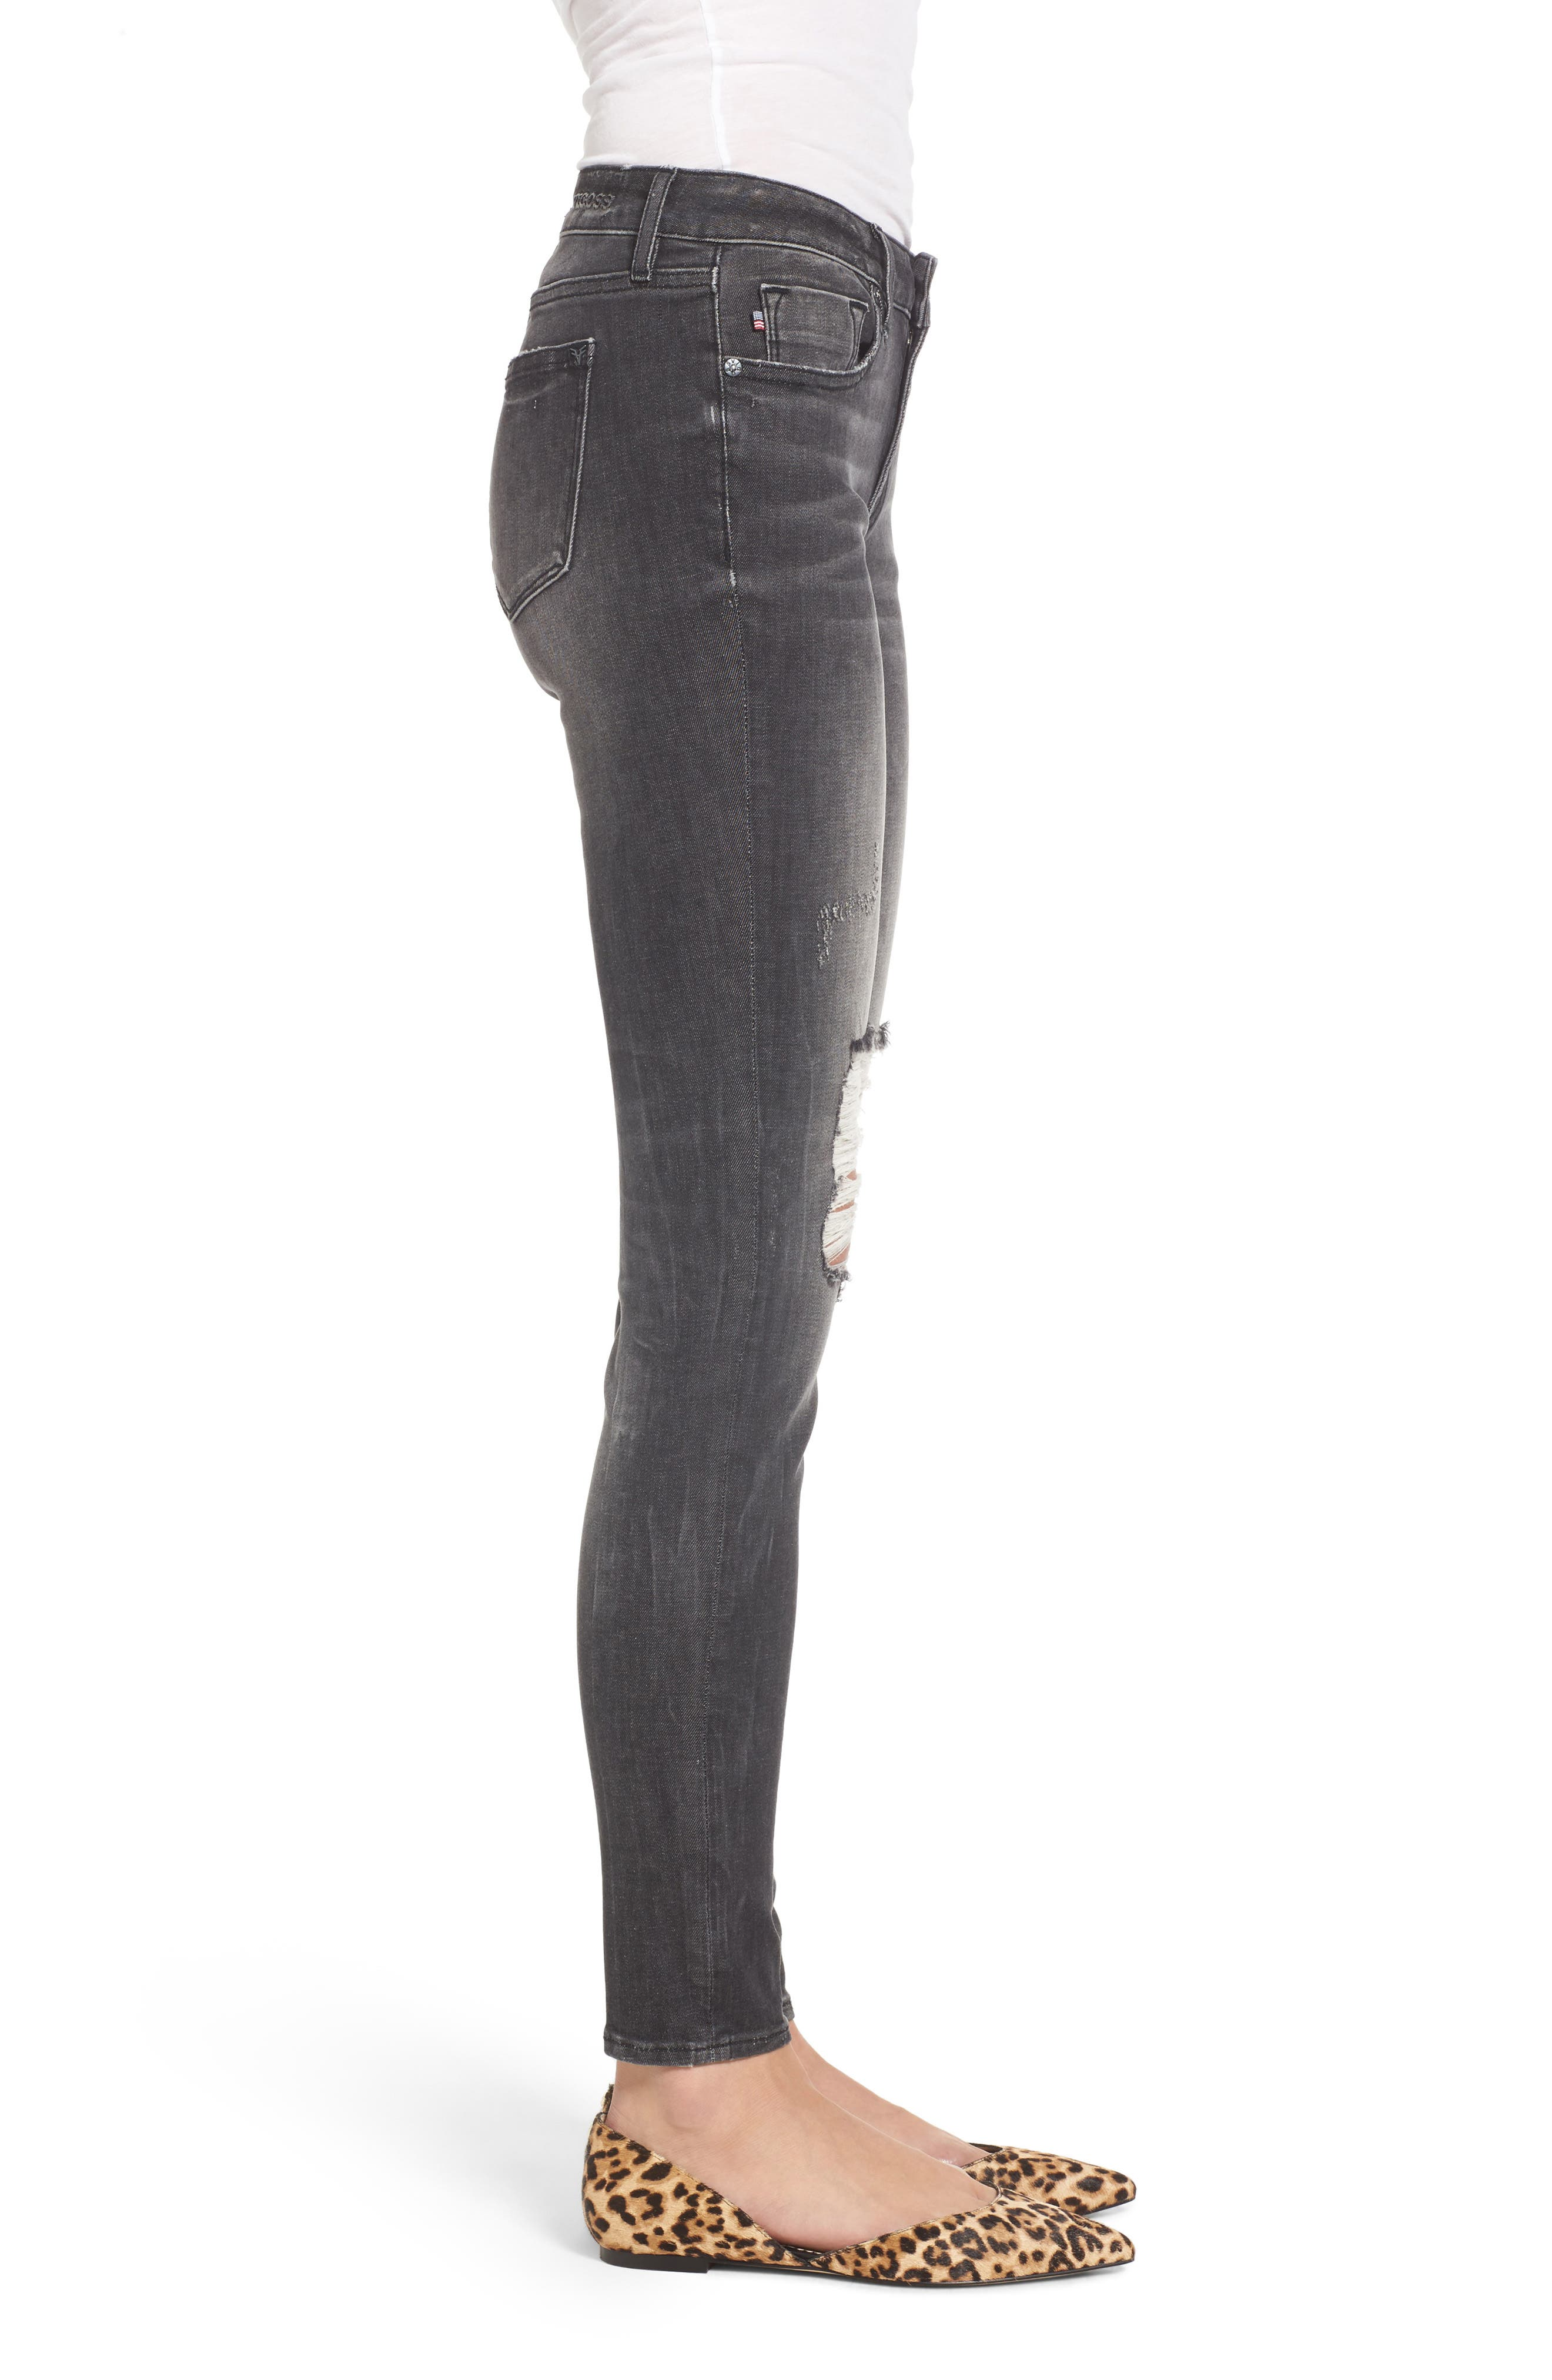 Jagger Ripped Skinny Jeans,                             Alternate thumbnail 3, color,                             020